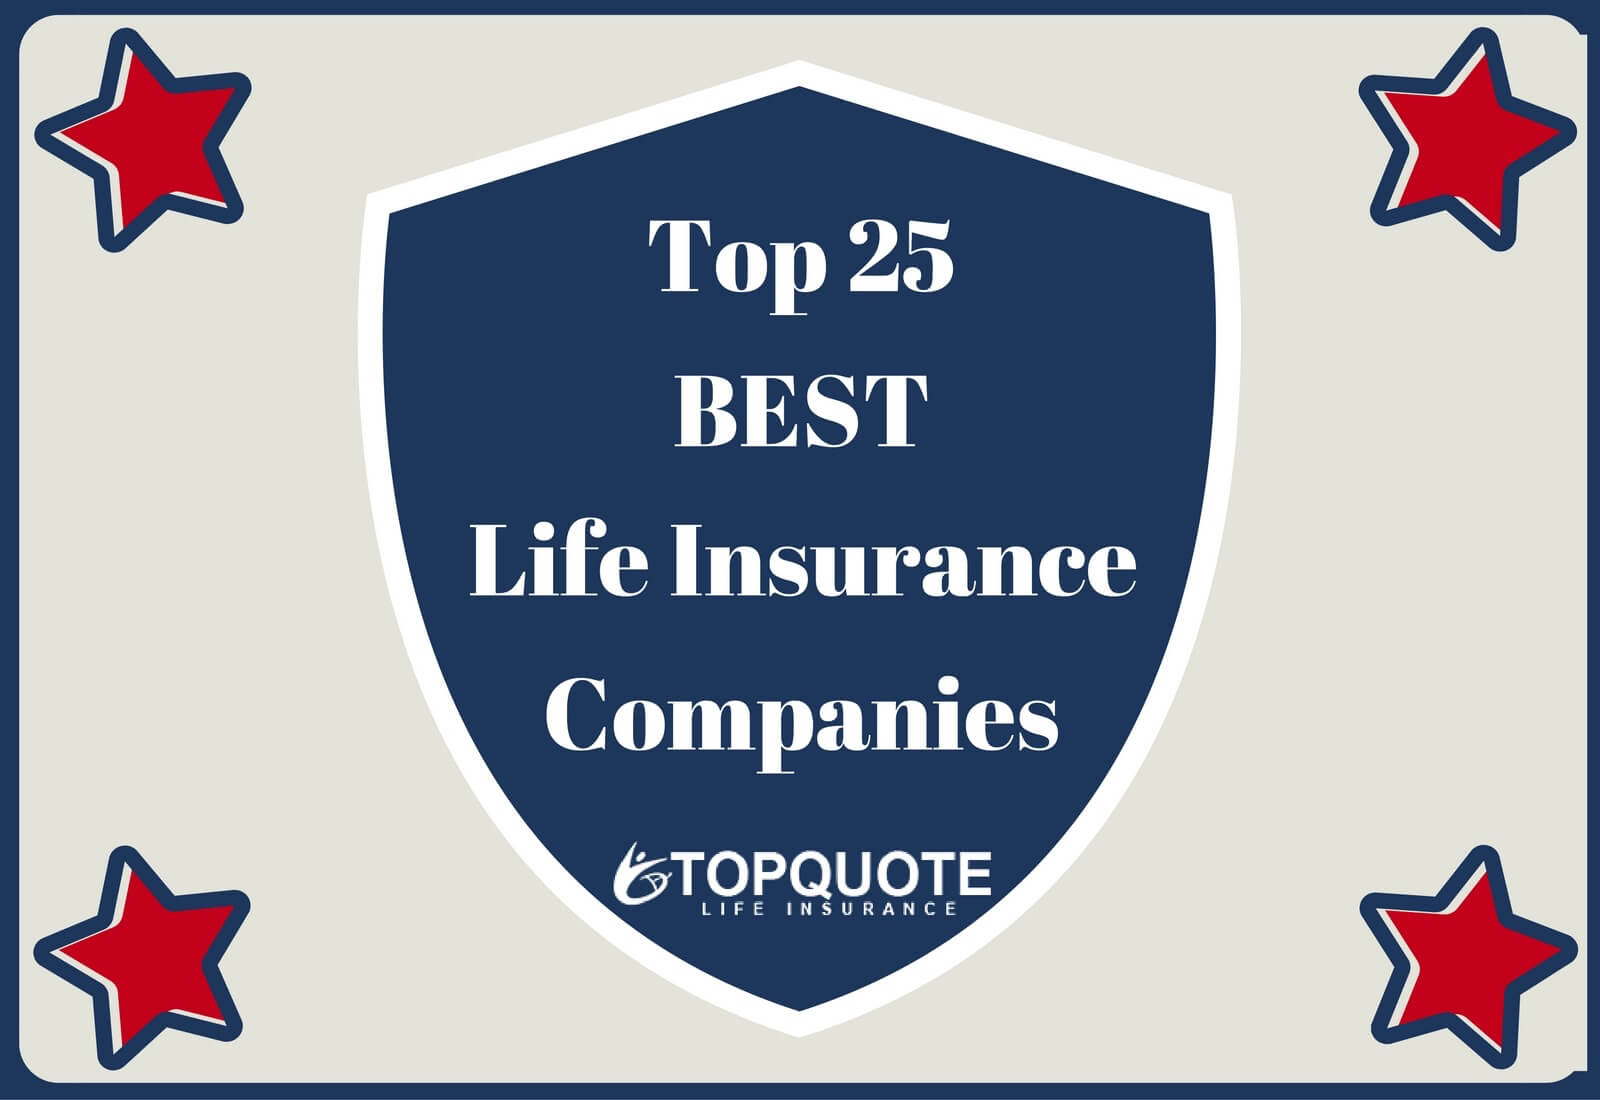 Cheap Whole Life Insurance Quotes Top 25 Best Life Insurance Companies Choosing The Perfect Coverage